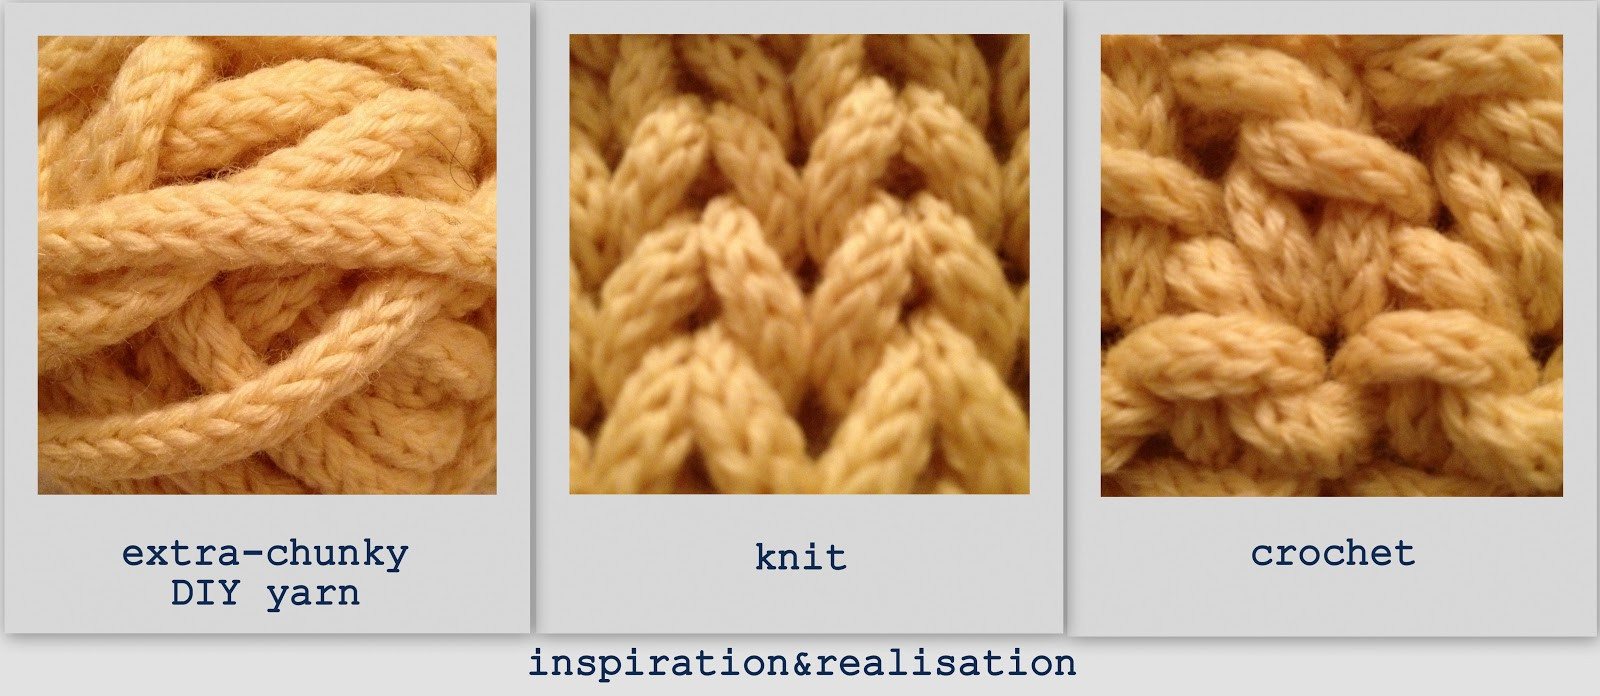 Extra Chunky Yarn Best Of Inspiration and Realisation Diy Fashion Blog Diy Make Of New 40 Pictures Extra Chunky Yarn